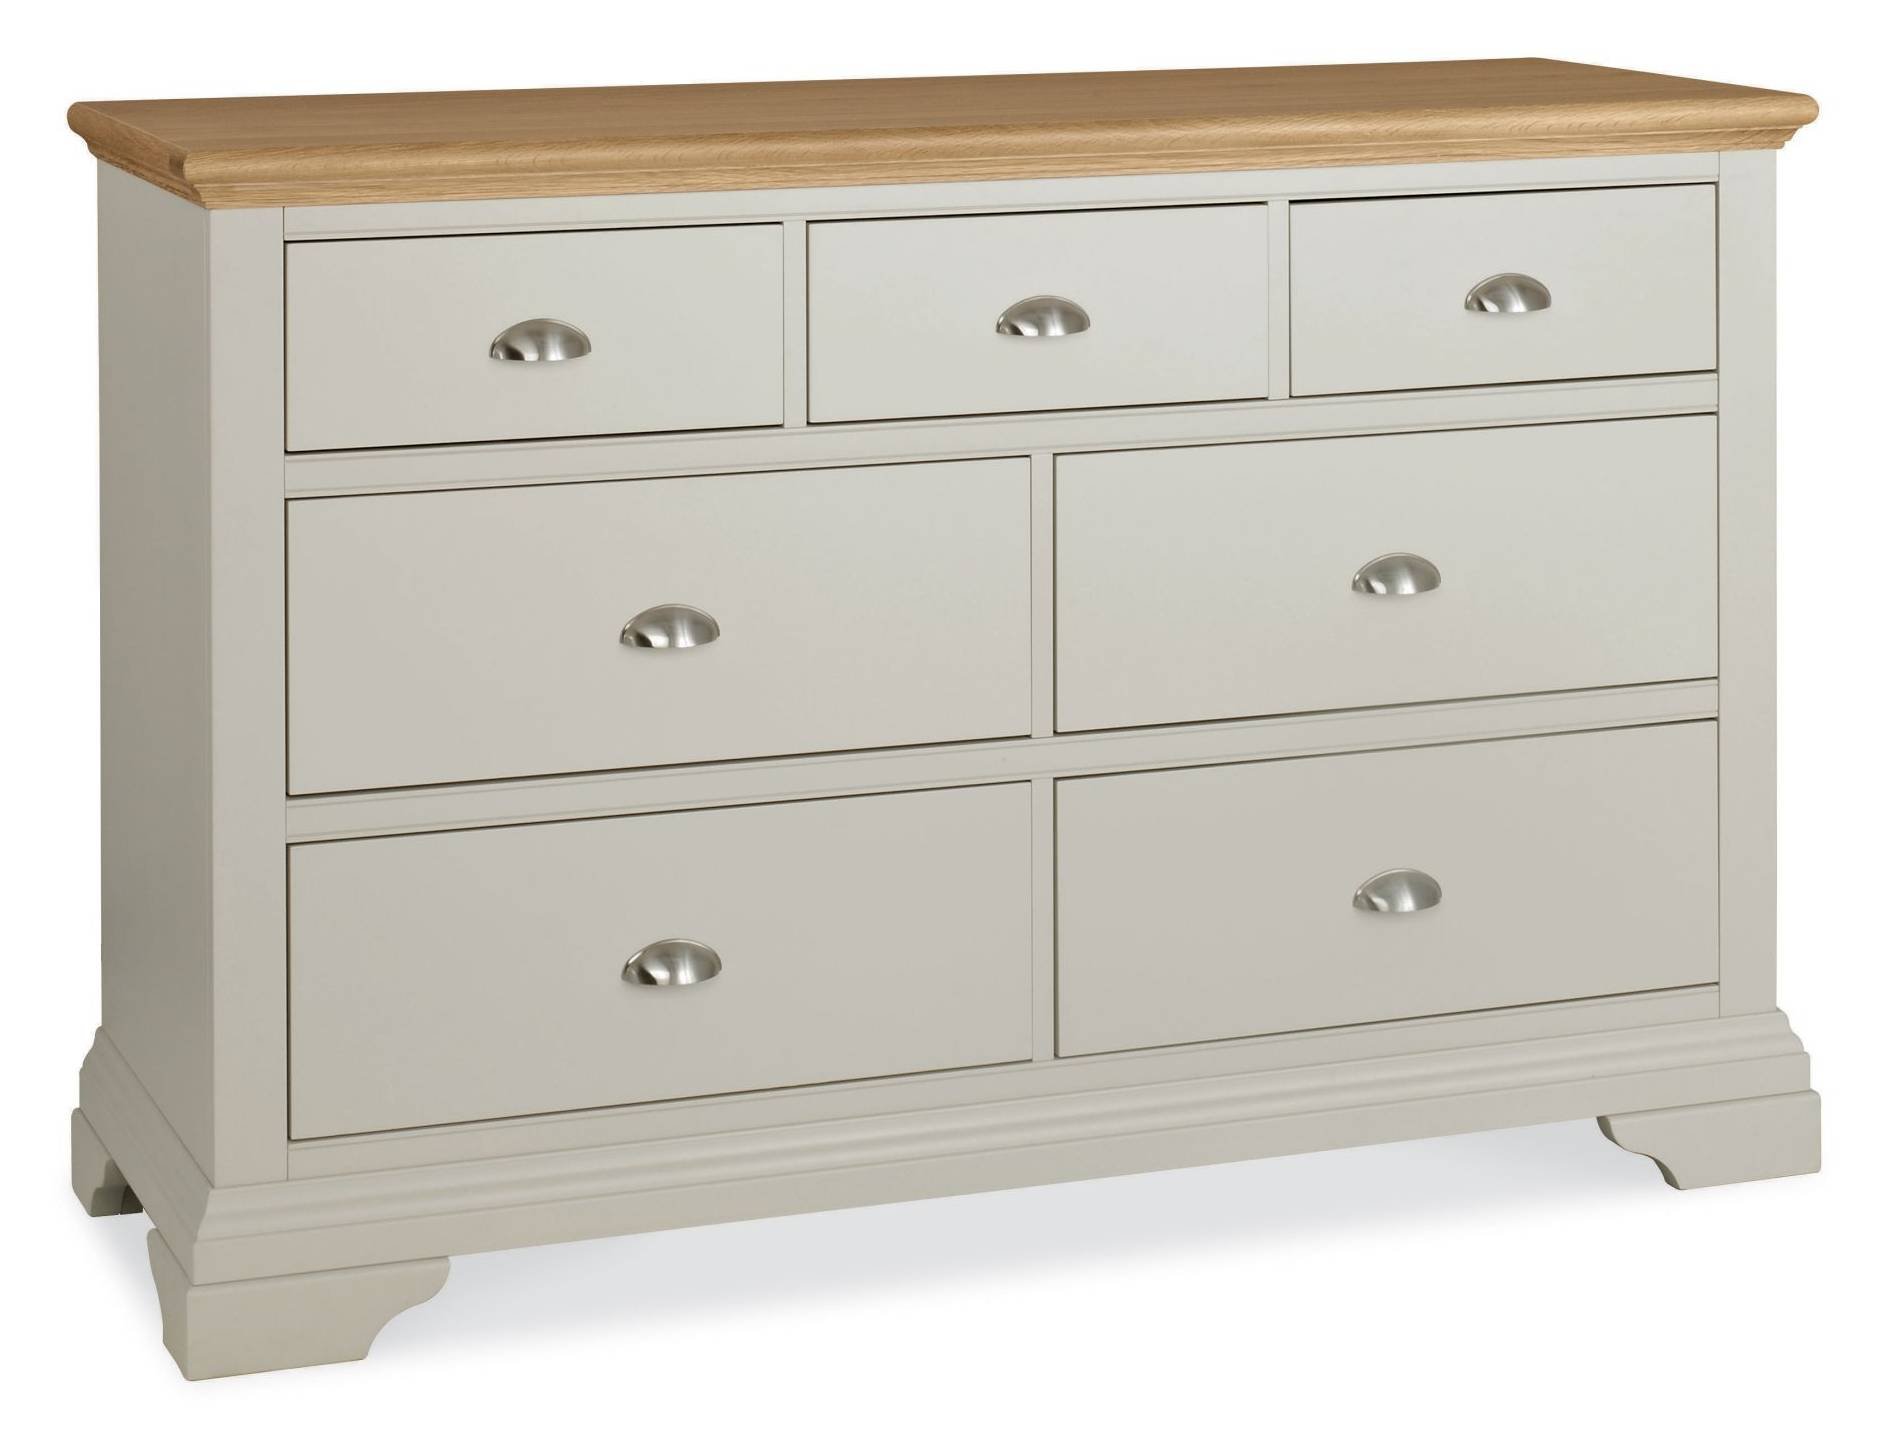 Fairford grey oak 3 4 drawer wide chest bedroom furniture hills furniture store for Bedroom furniture soft close drawers